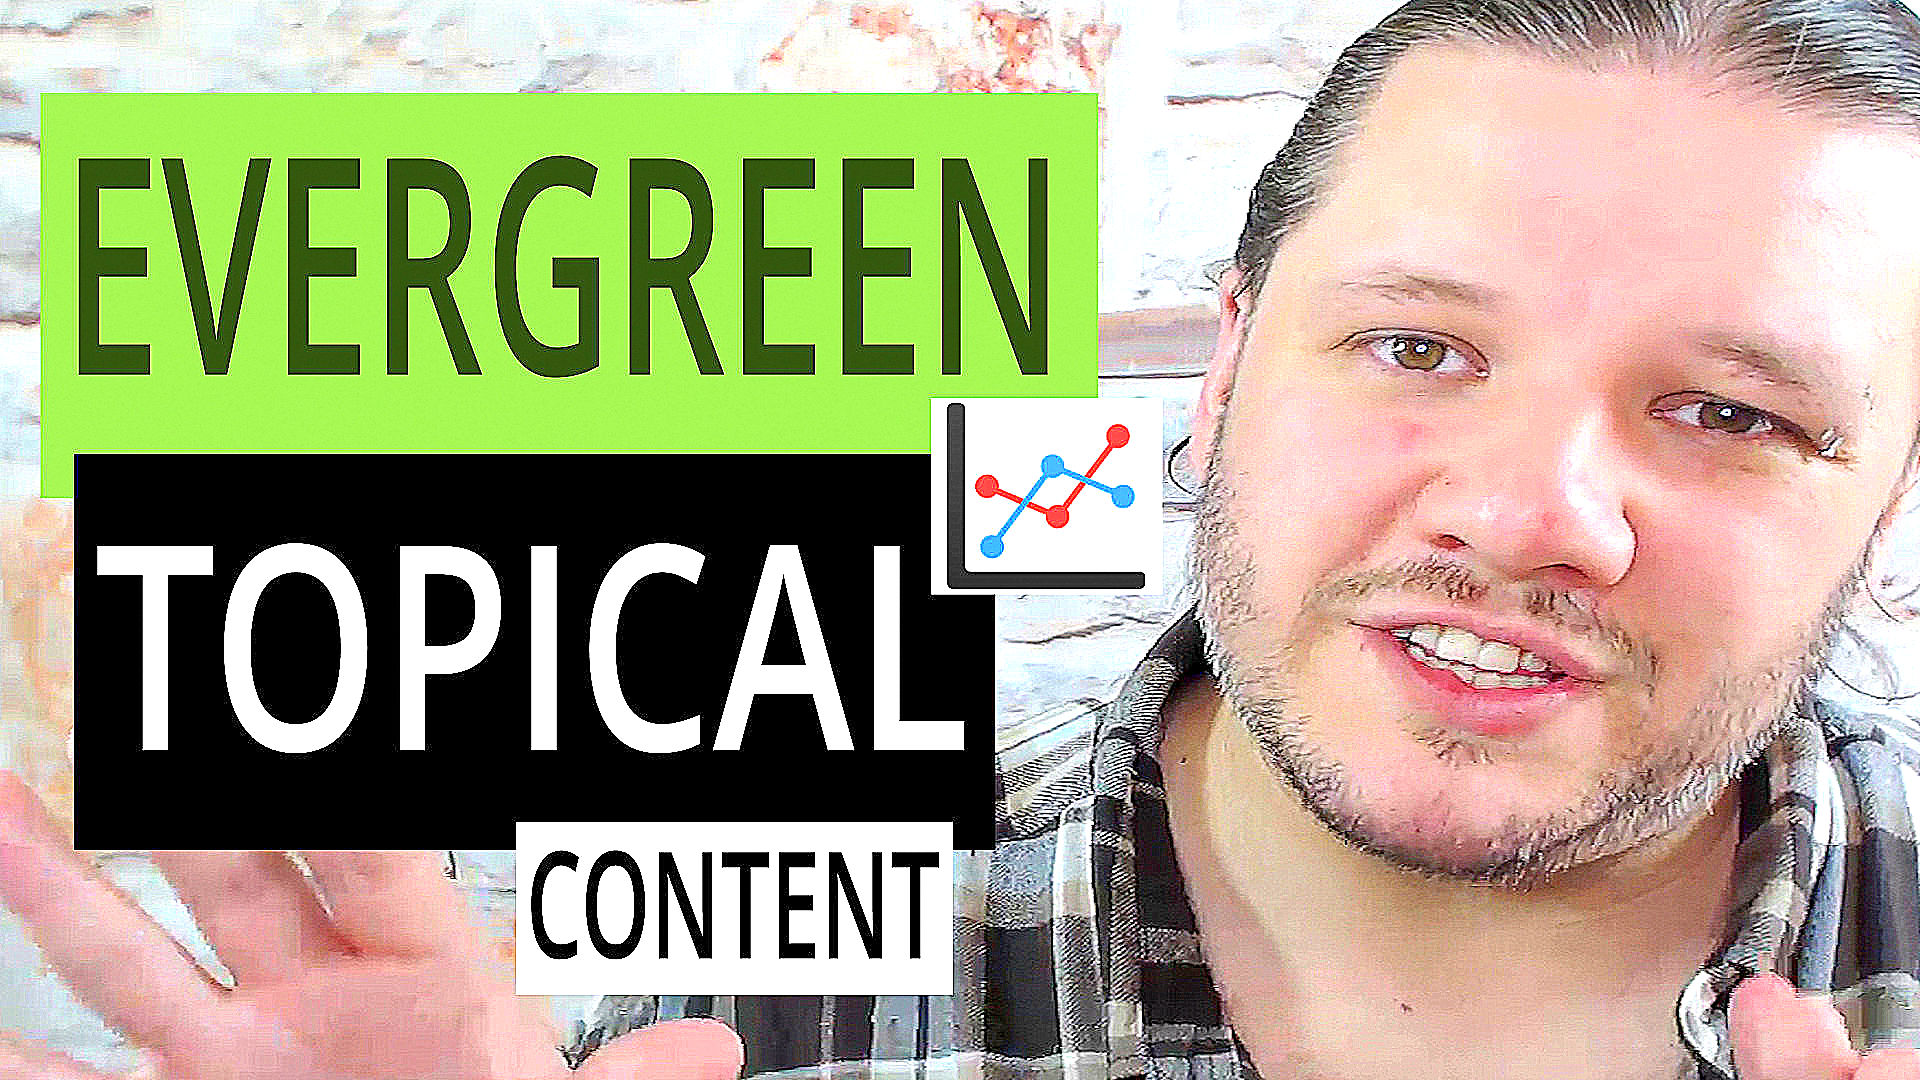 alan spicer,alanspicer,youtube tips,youtube tricks,asyt,evergreen video,evergreen content,evergreen,evergreen questions,what is evergreen video,what is topical content,what is evergreen content,topical content,viral content,trending content,trending video,viral trends,evergreen video content,video,topical,youtube,spicer,evergreen content definition,evergreen content examples,evergreen content ideas,youtube tutorial,tutorial